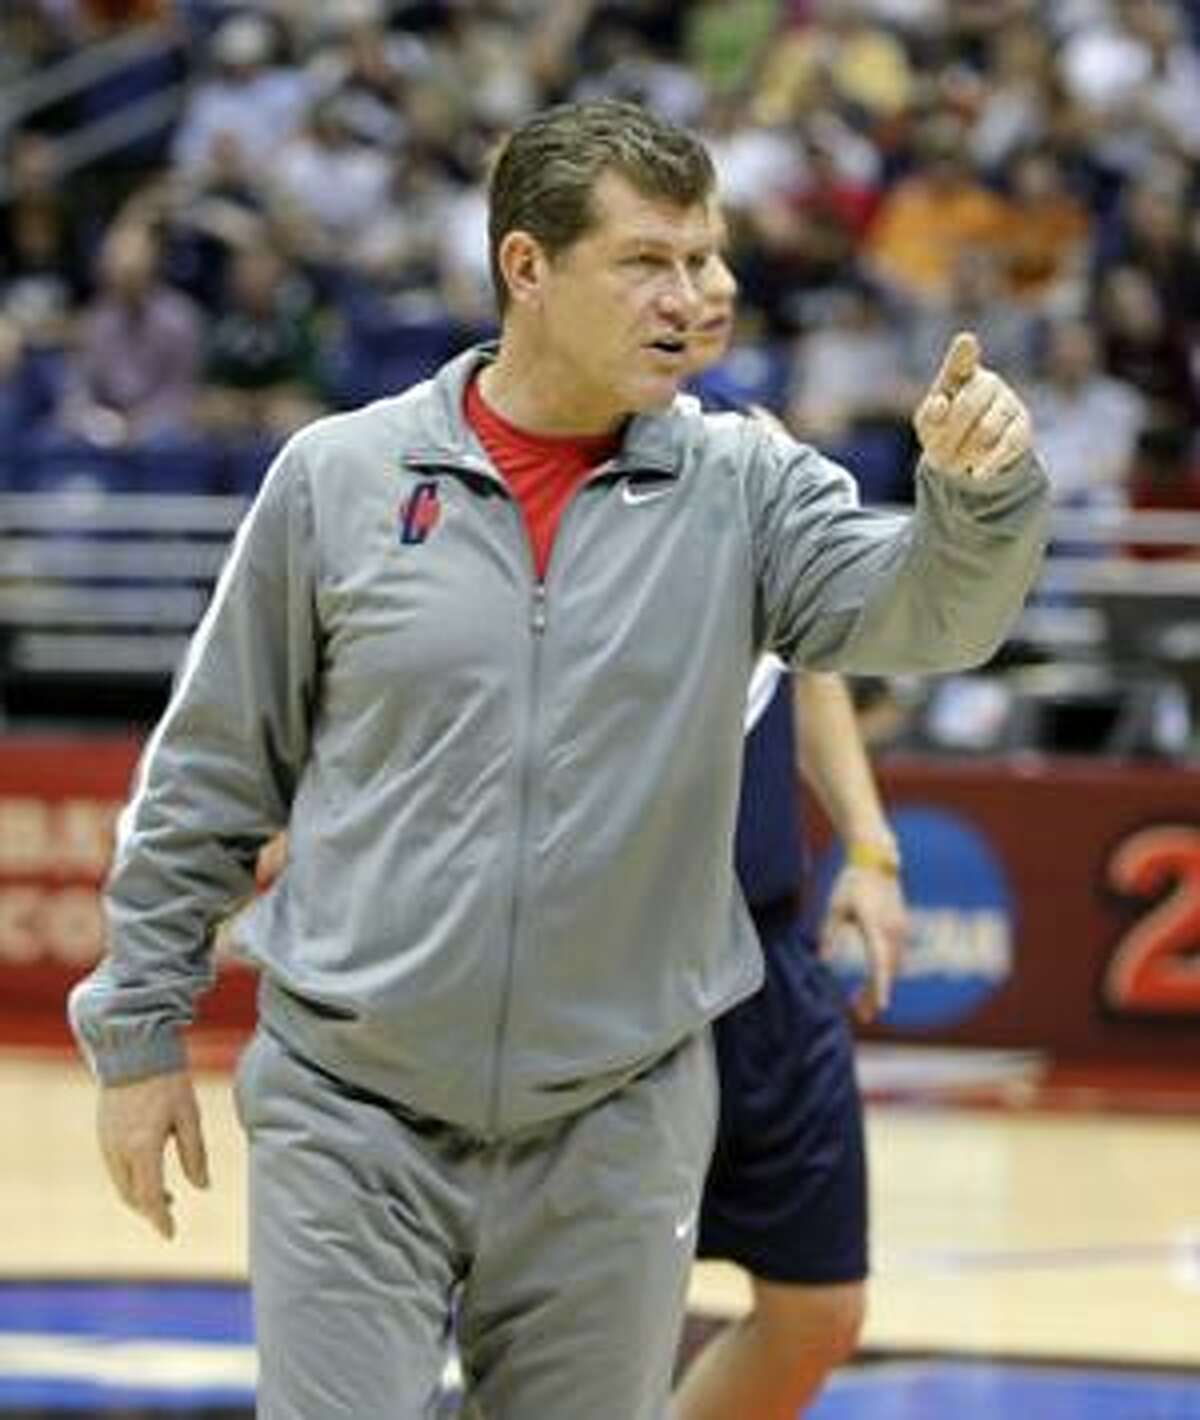 Connecticut coach Geno Auriemma instructs his team during practice for the NCAA Women's Final Four college basketball tournament Saturday, April 3, 2010, in San Antonio, Texas. Connecticut plays Baylor in a national semifinal game Sunday. (AP Photo/Sue Ogrocki)